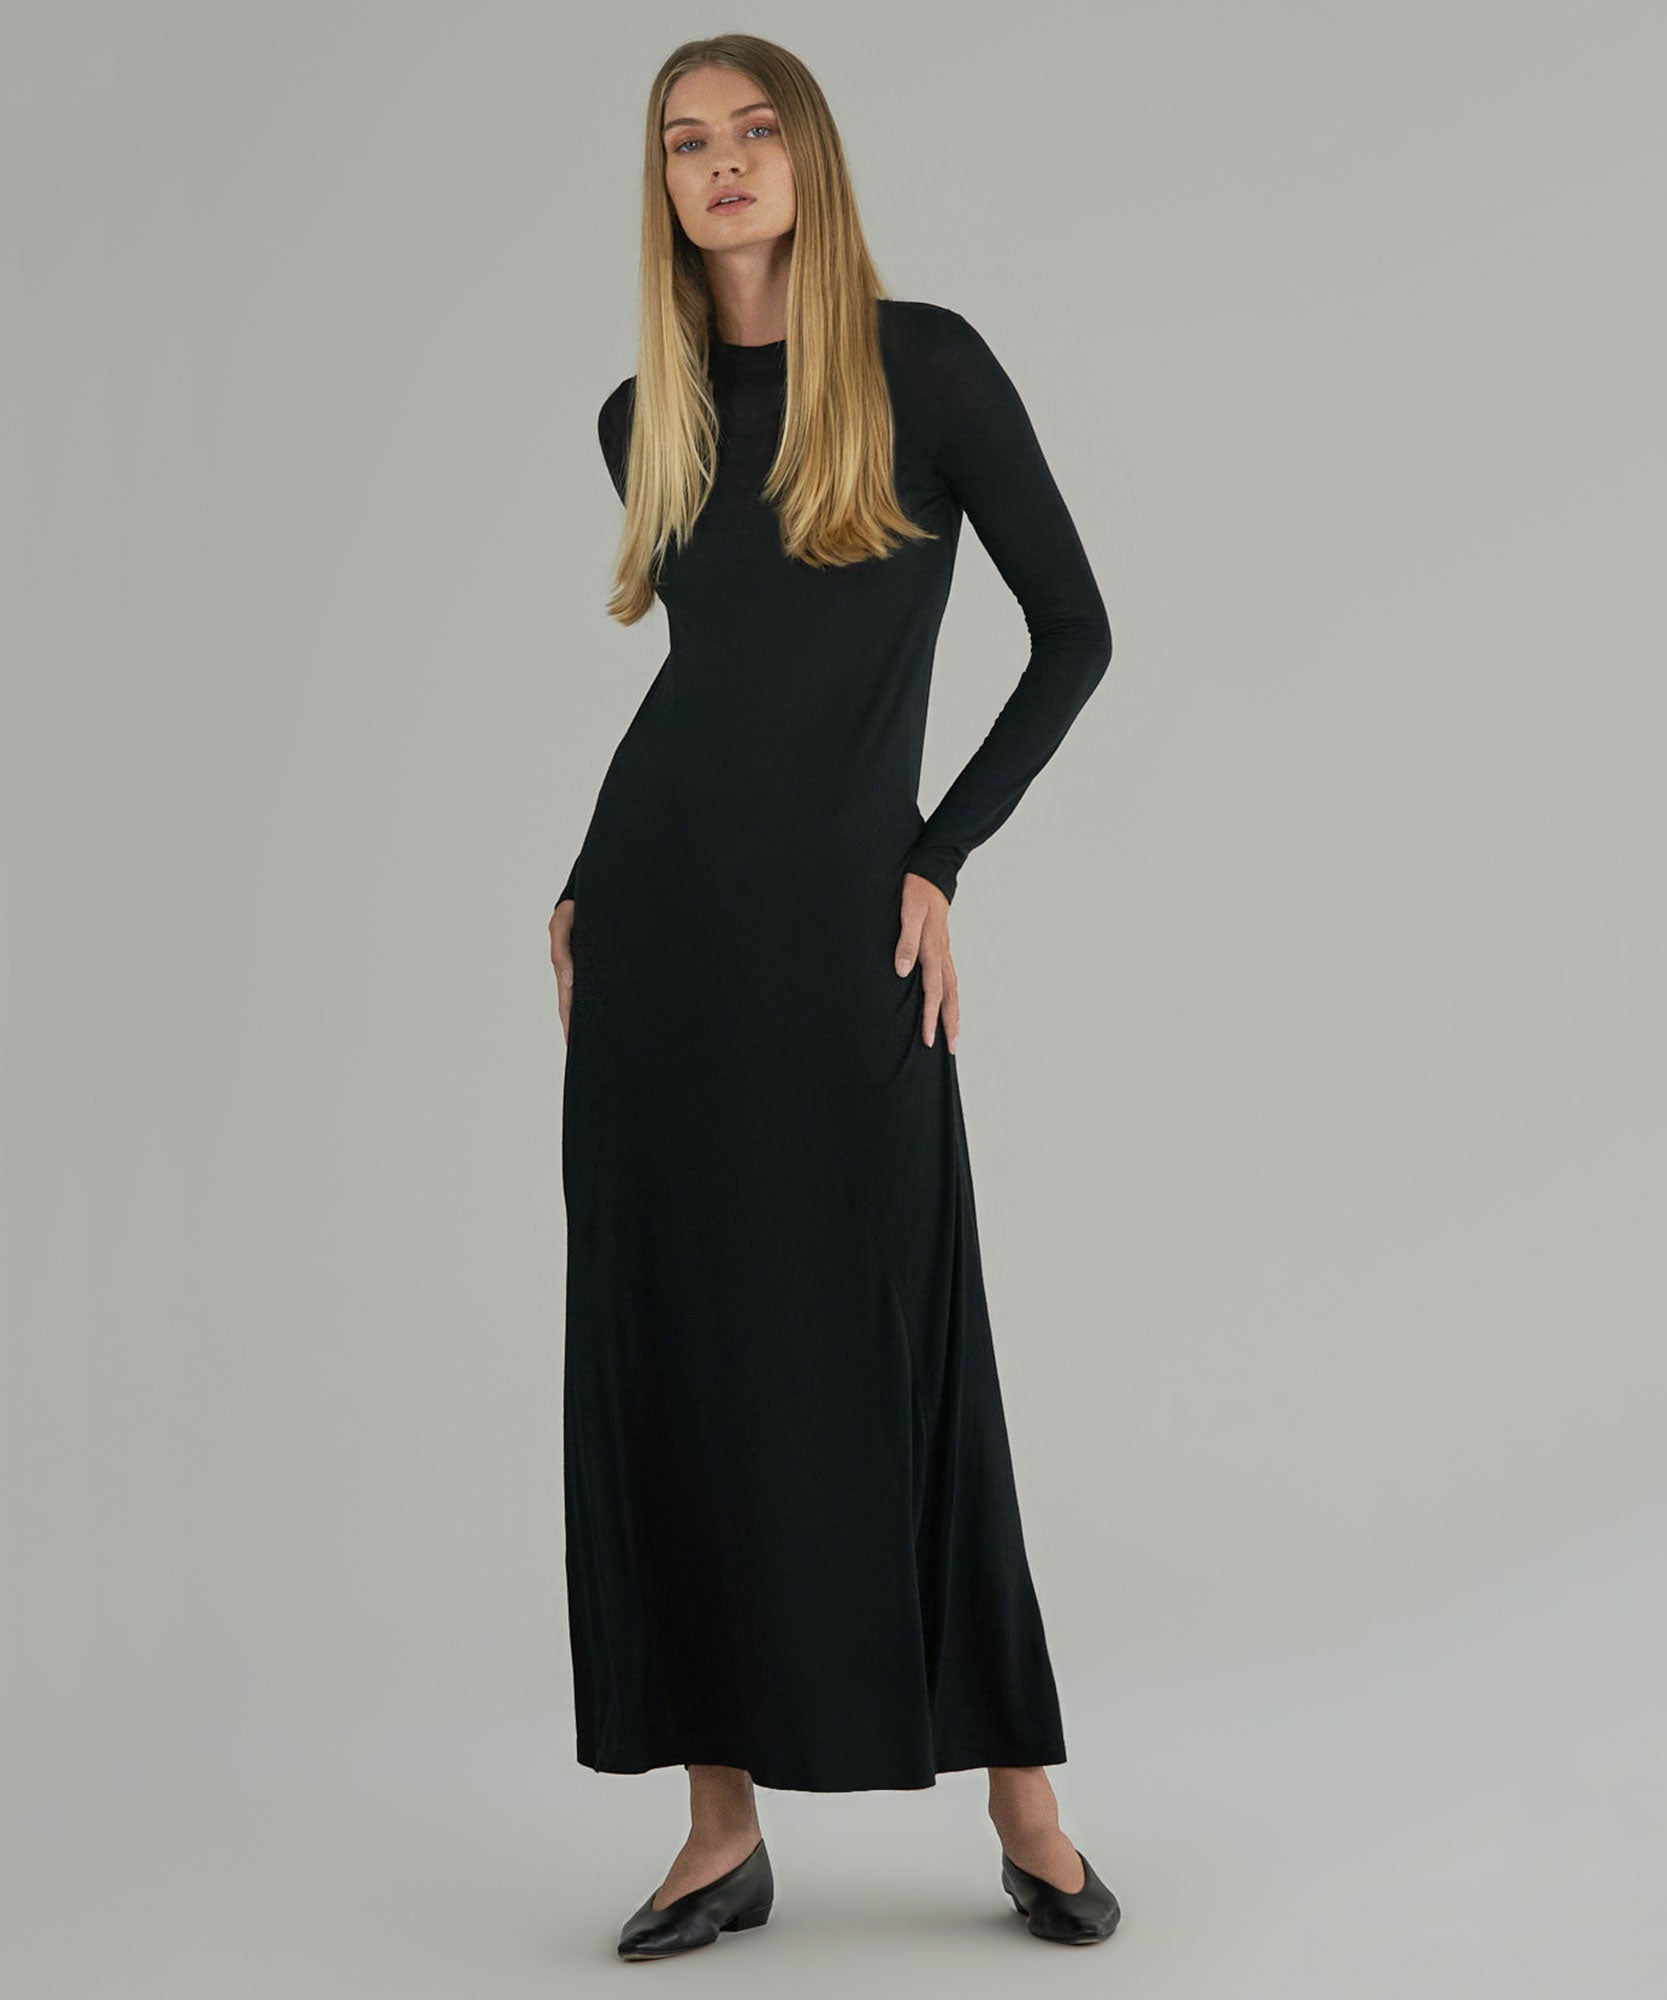 Black Modal Jersey Long Sleeve Crew Neck Seamed Maxi Dress - Women's Dress by ATM Anthony Thomas Melillo